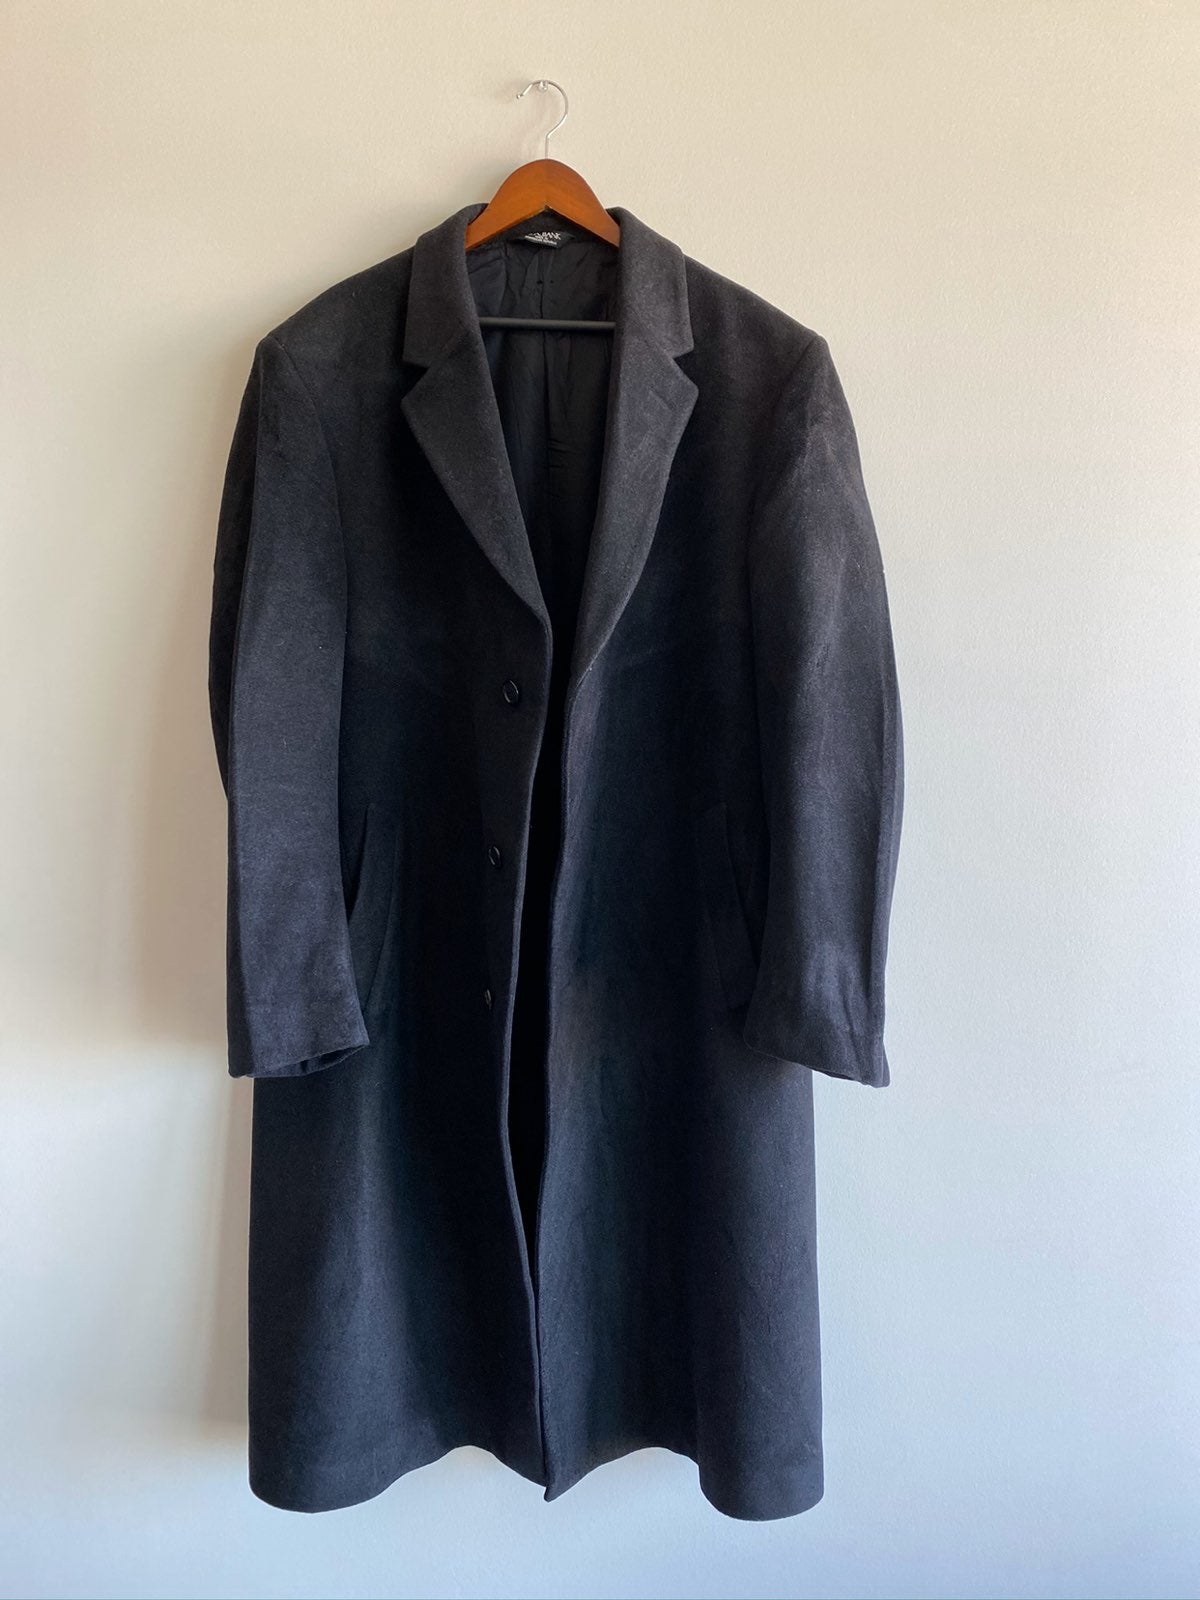 Jos A. Bank Trench Coat Sz 46